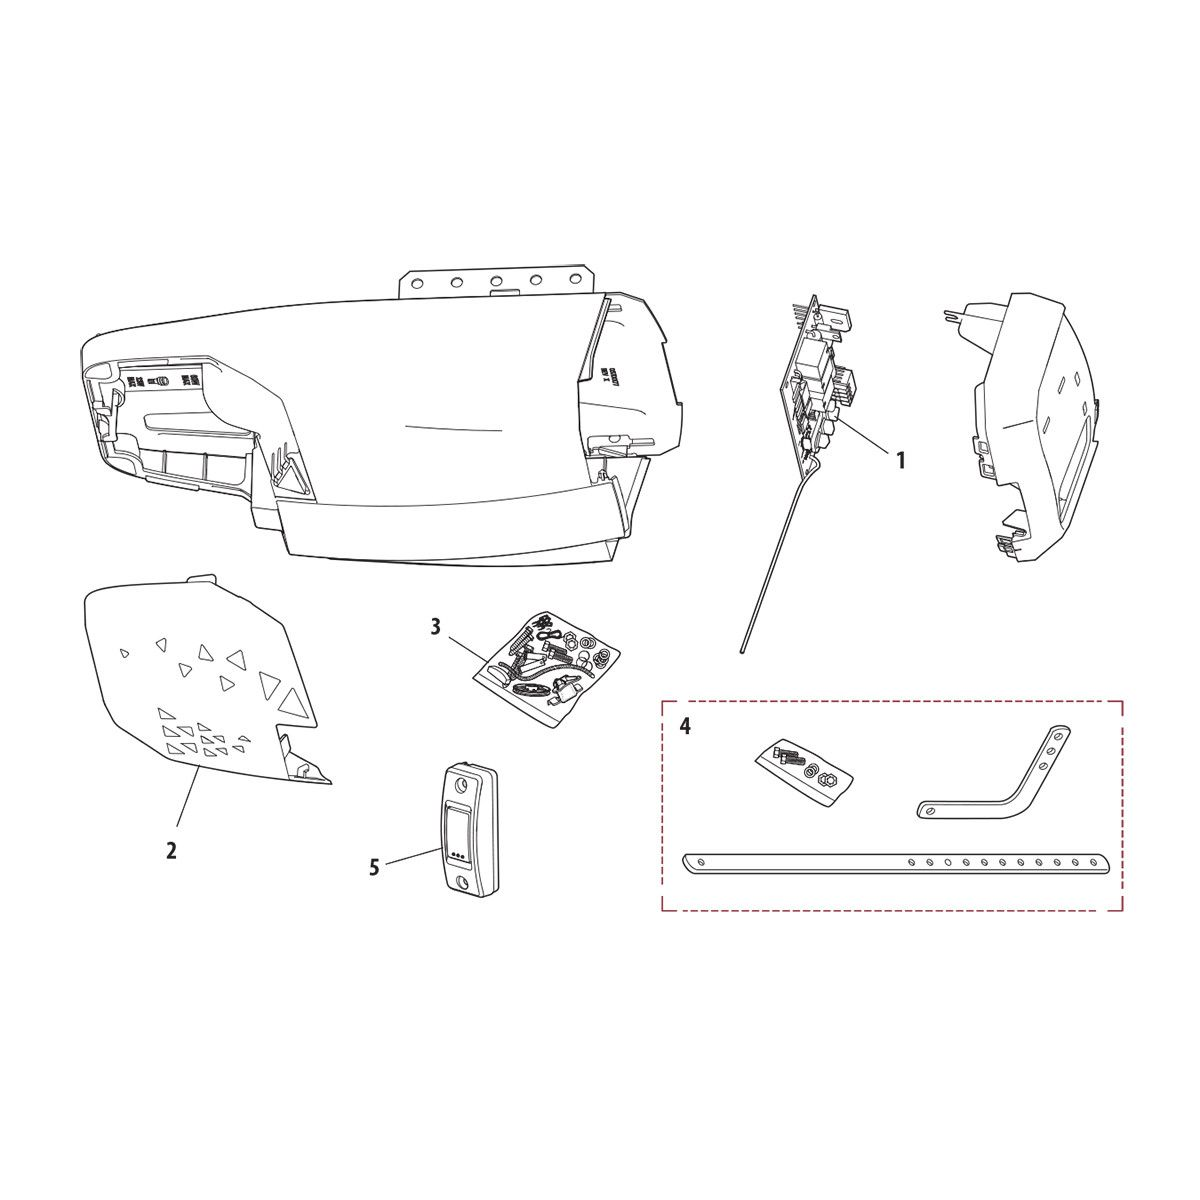 Chamberlain Pd220 Replacement Parts